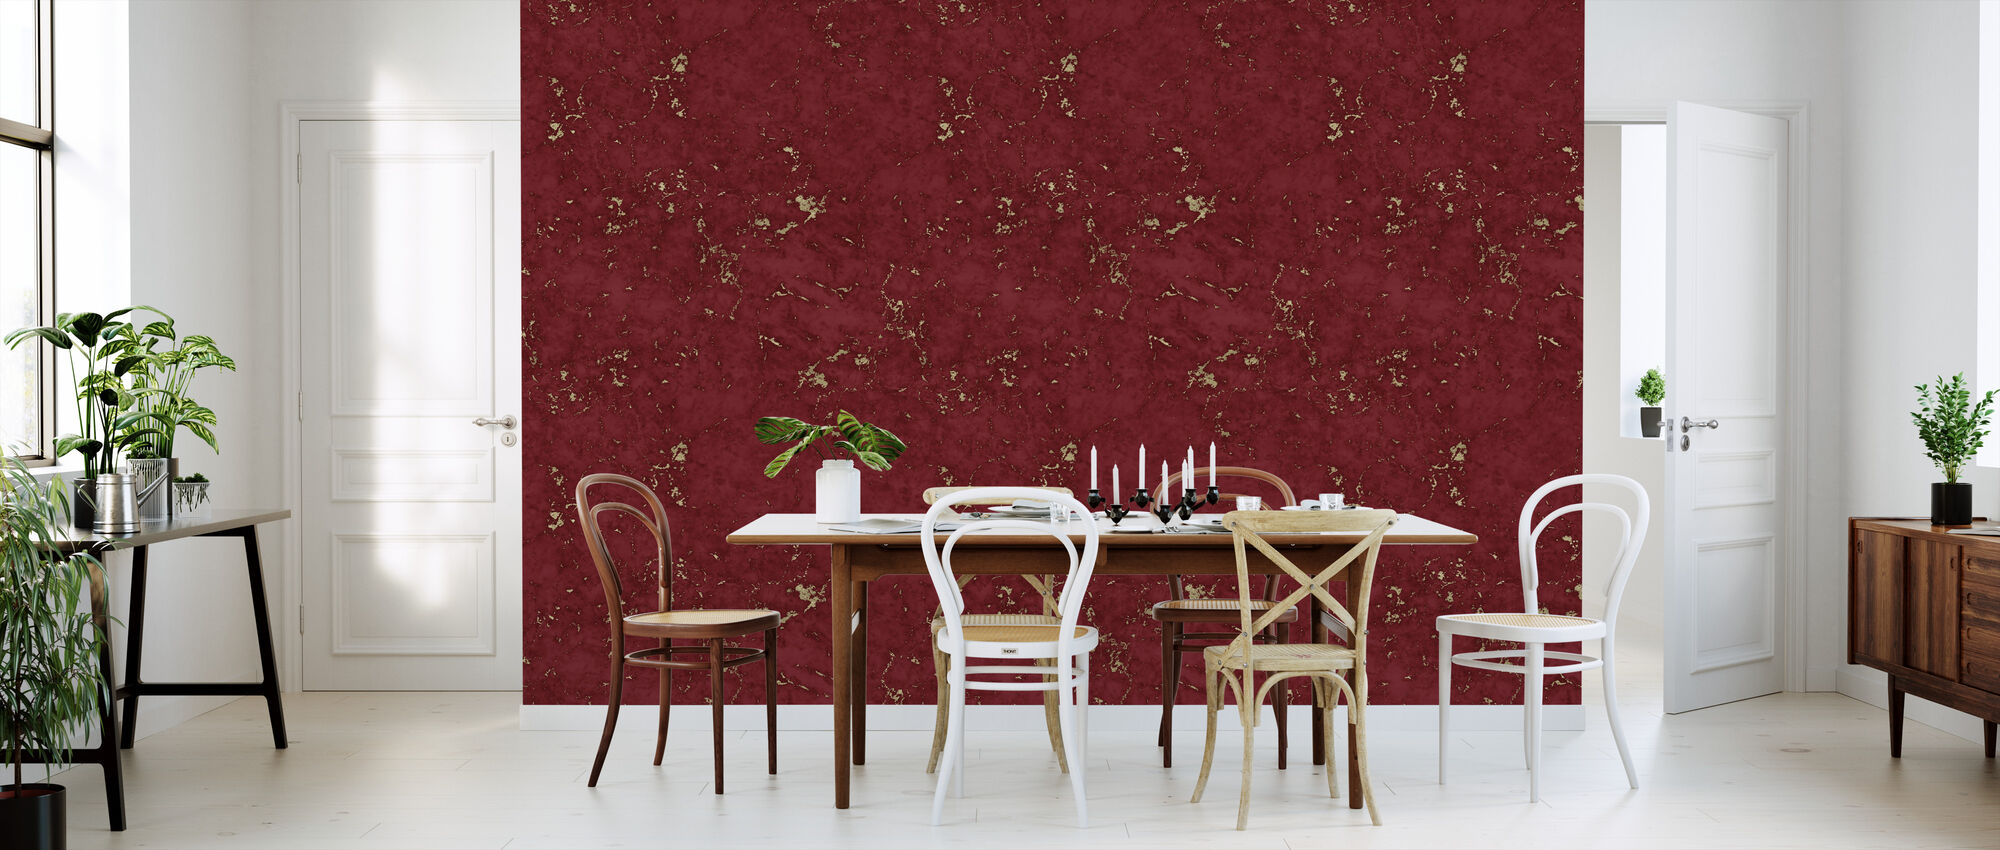 Marble Red Damasco Gold - Wallpaper - Kitchen